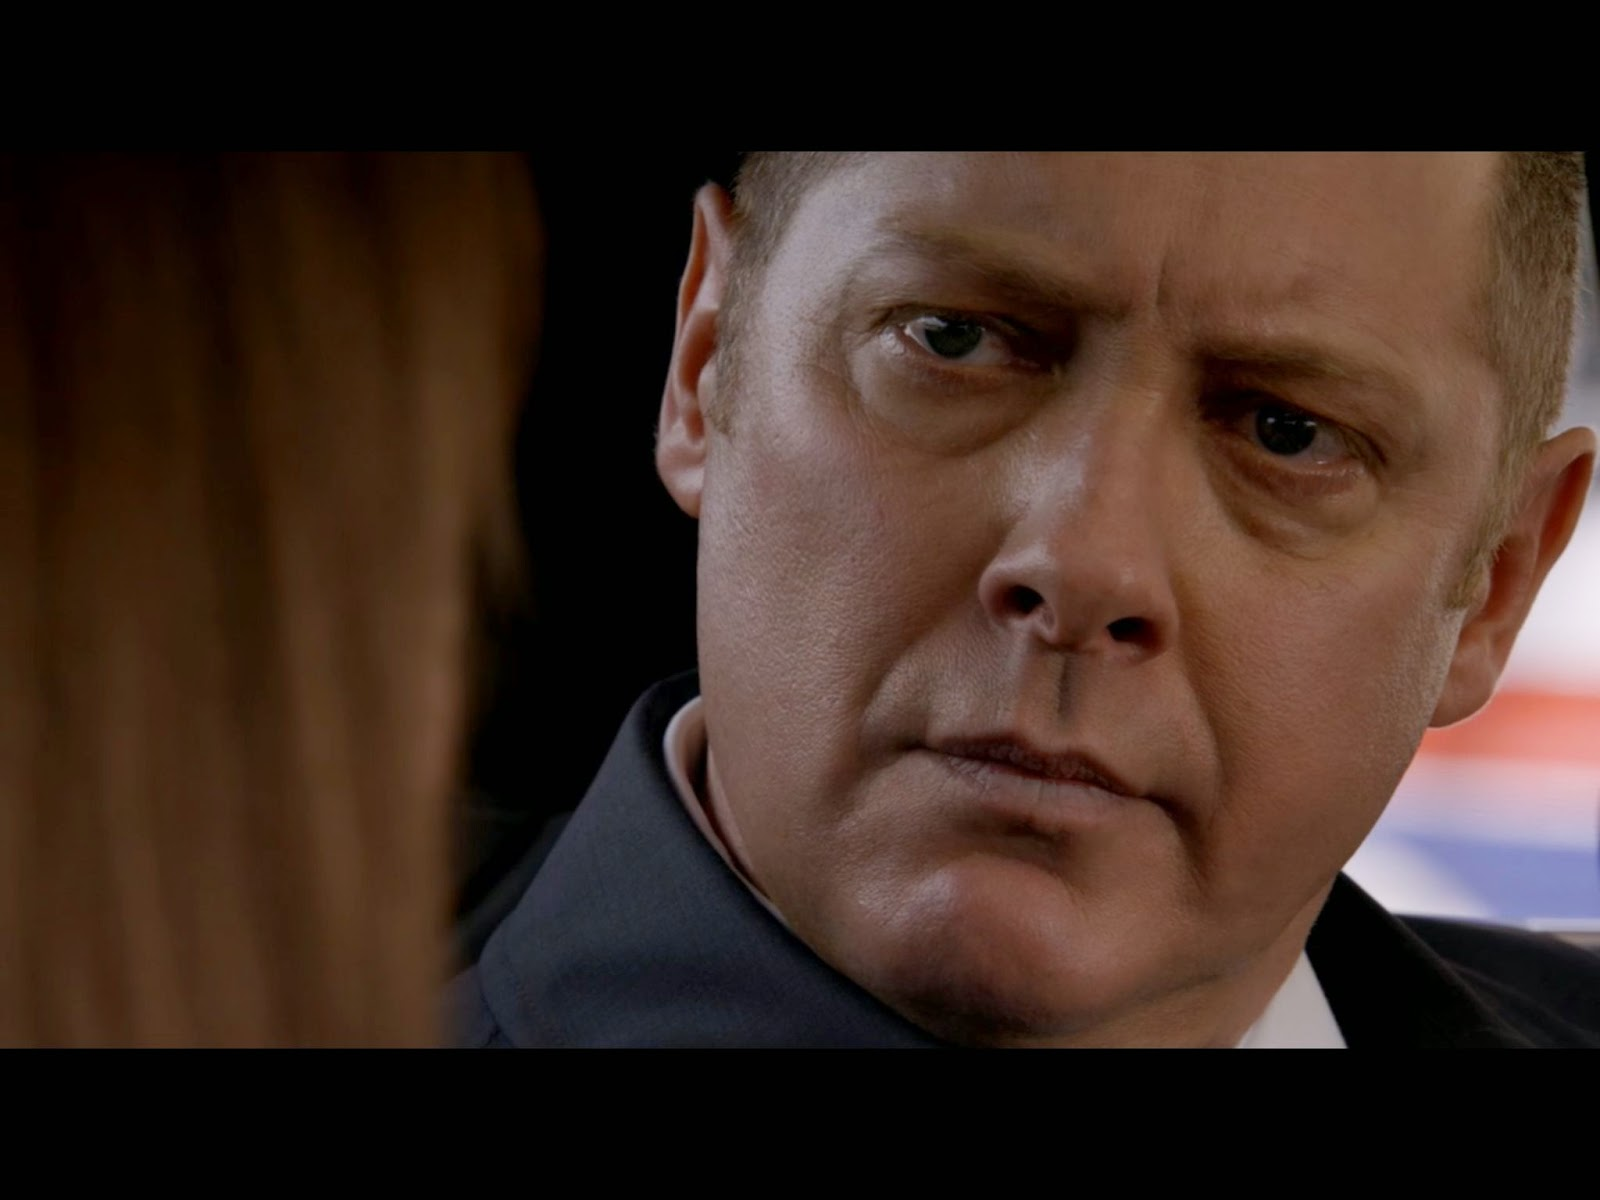 The Blacklist - Season Finale - Review and Unanswered Questions